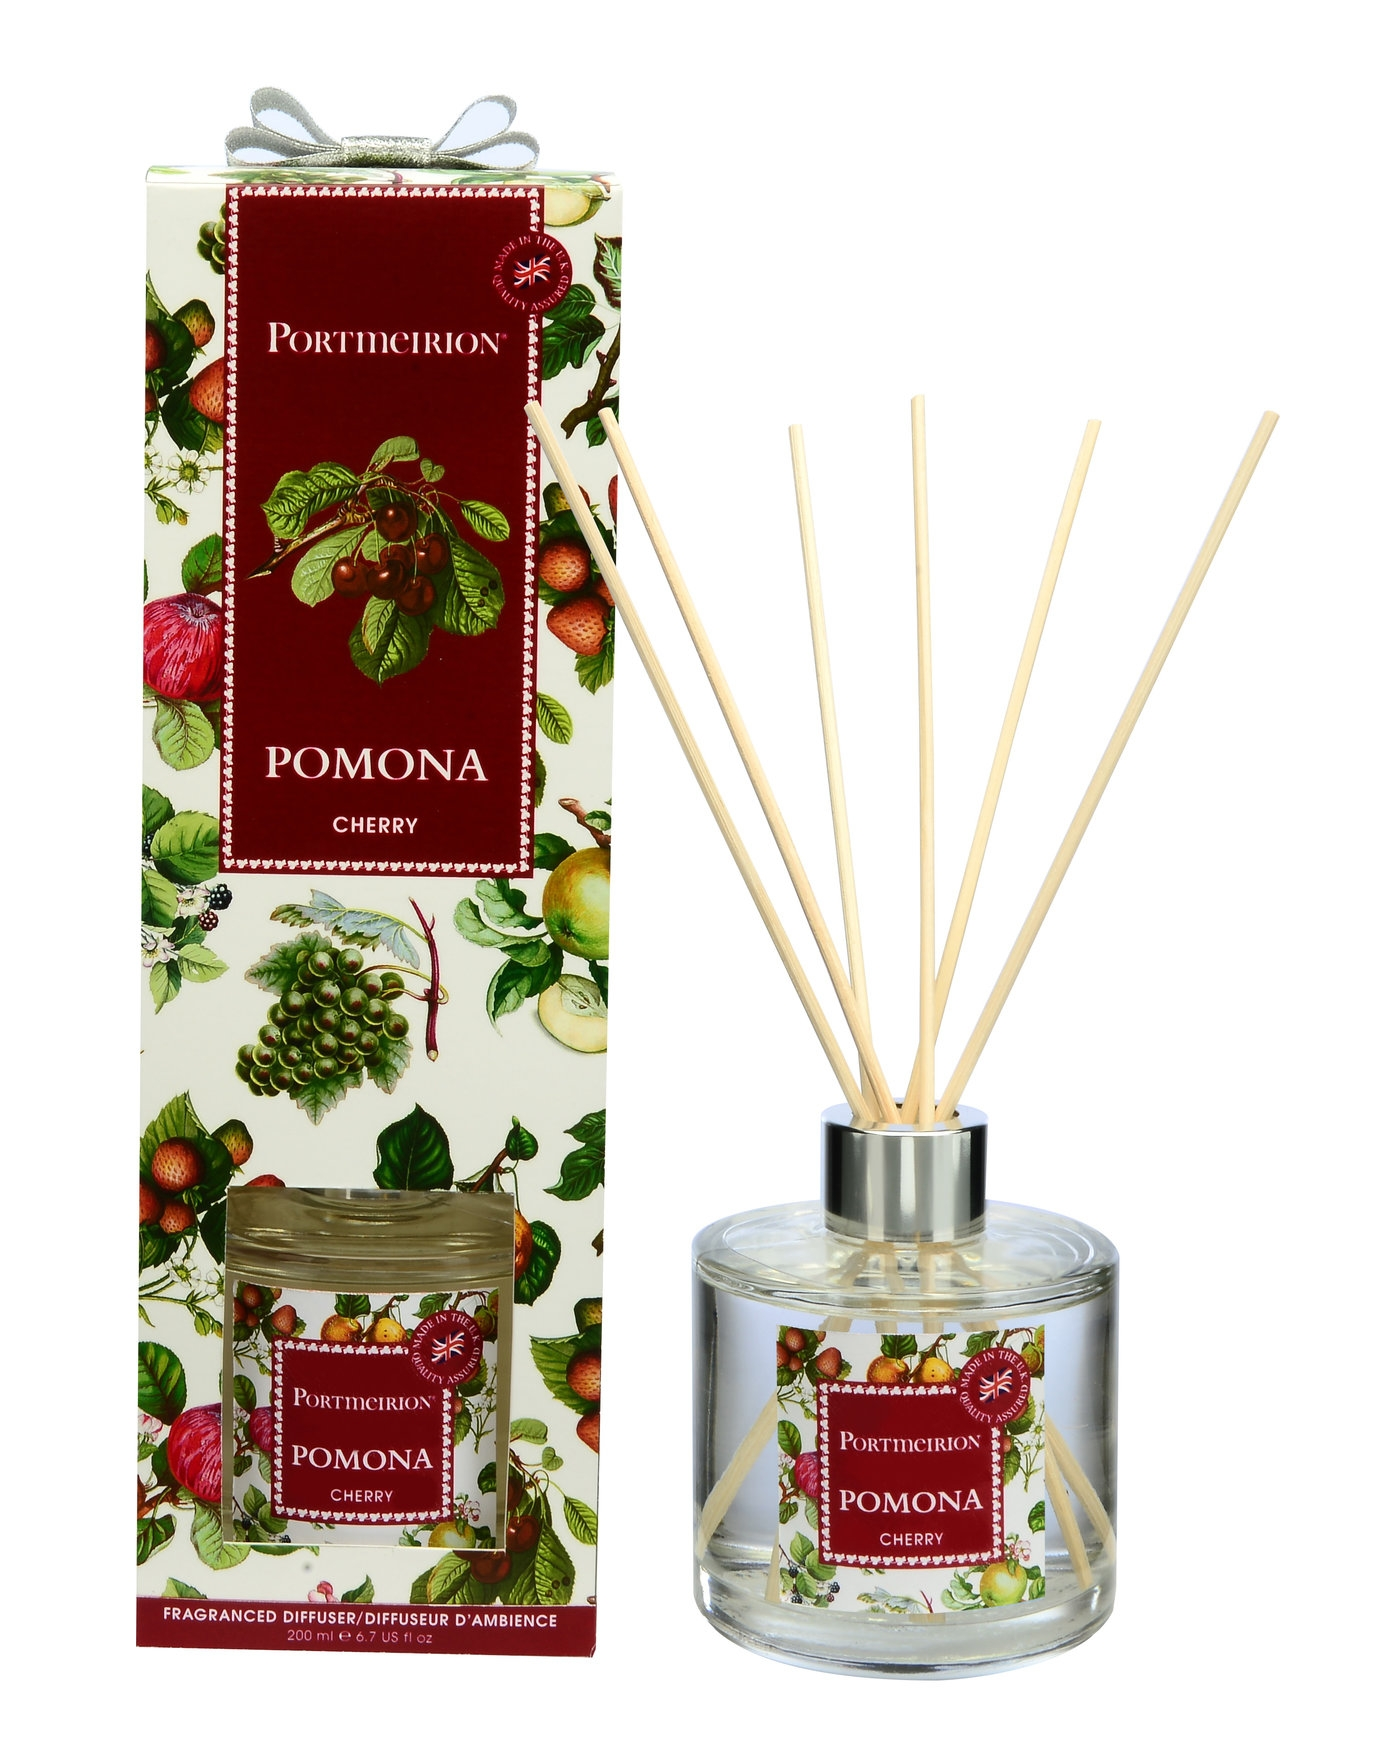 Portmeirion Pomona Home Fragrance